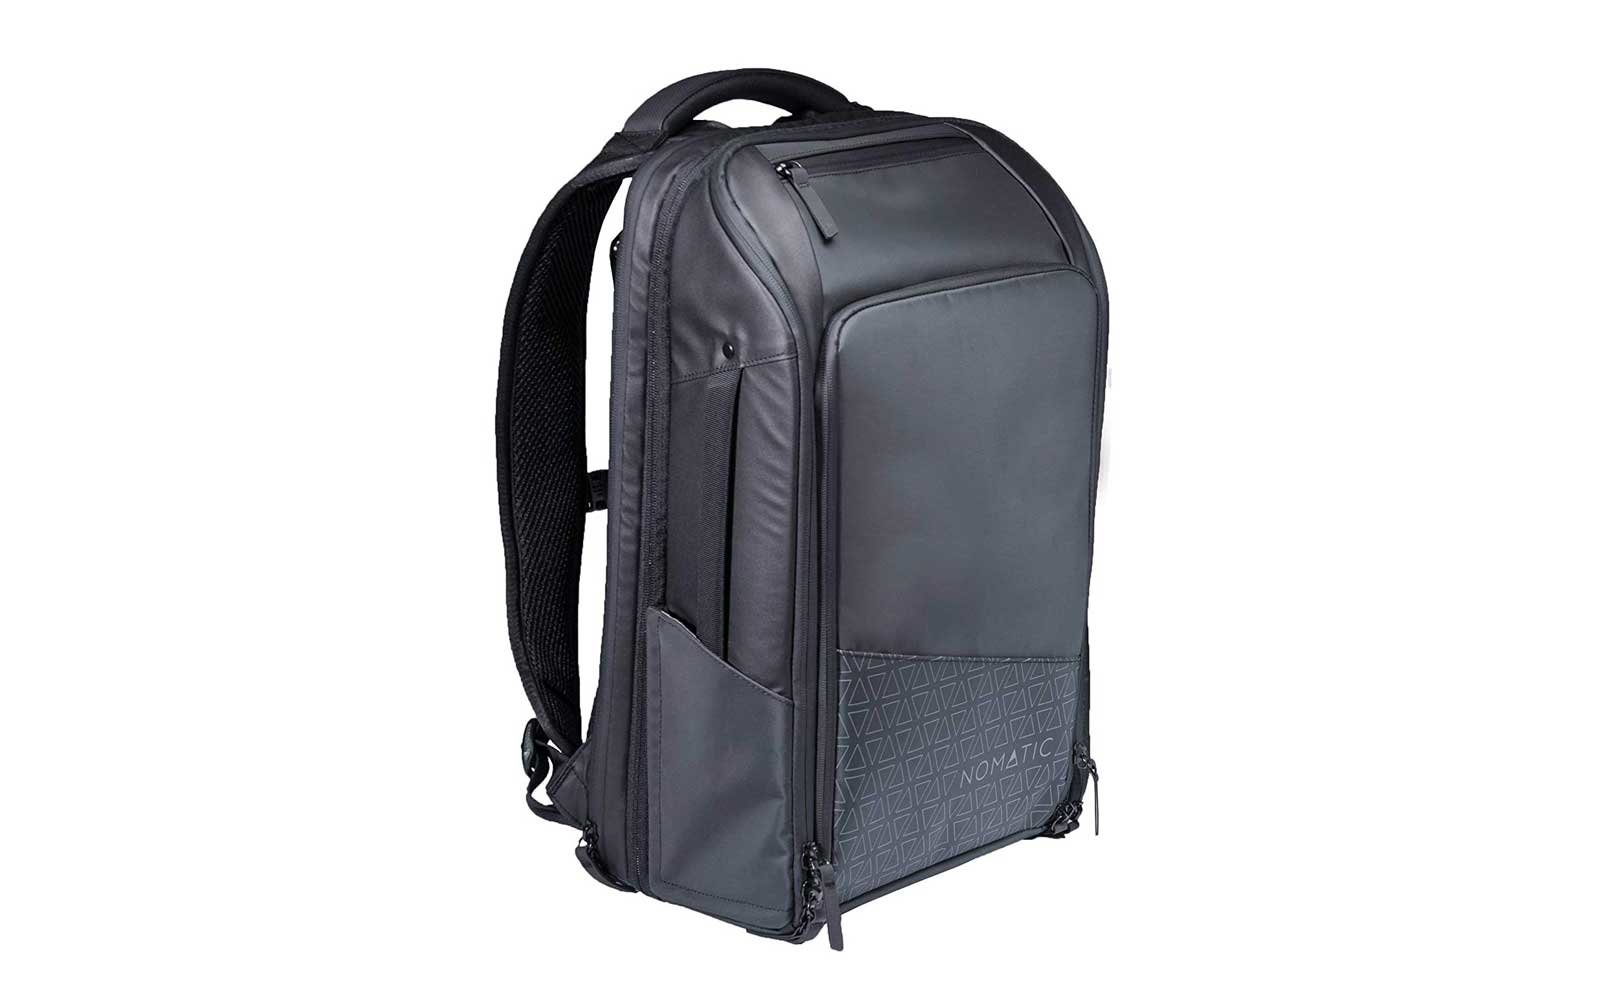 Best All-in-one Laptop Backpack: Nomatic Travel Pack